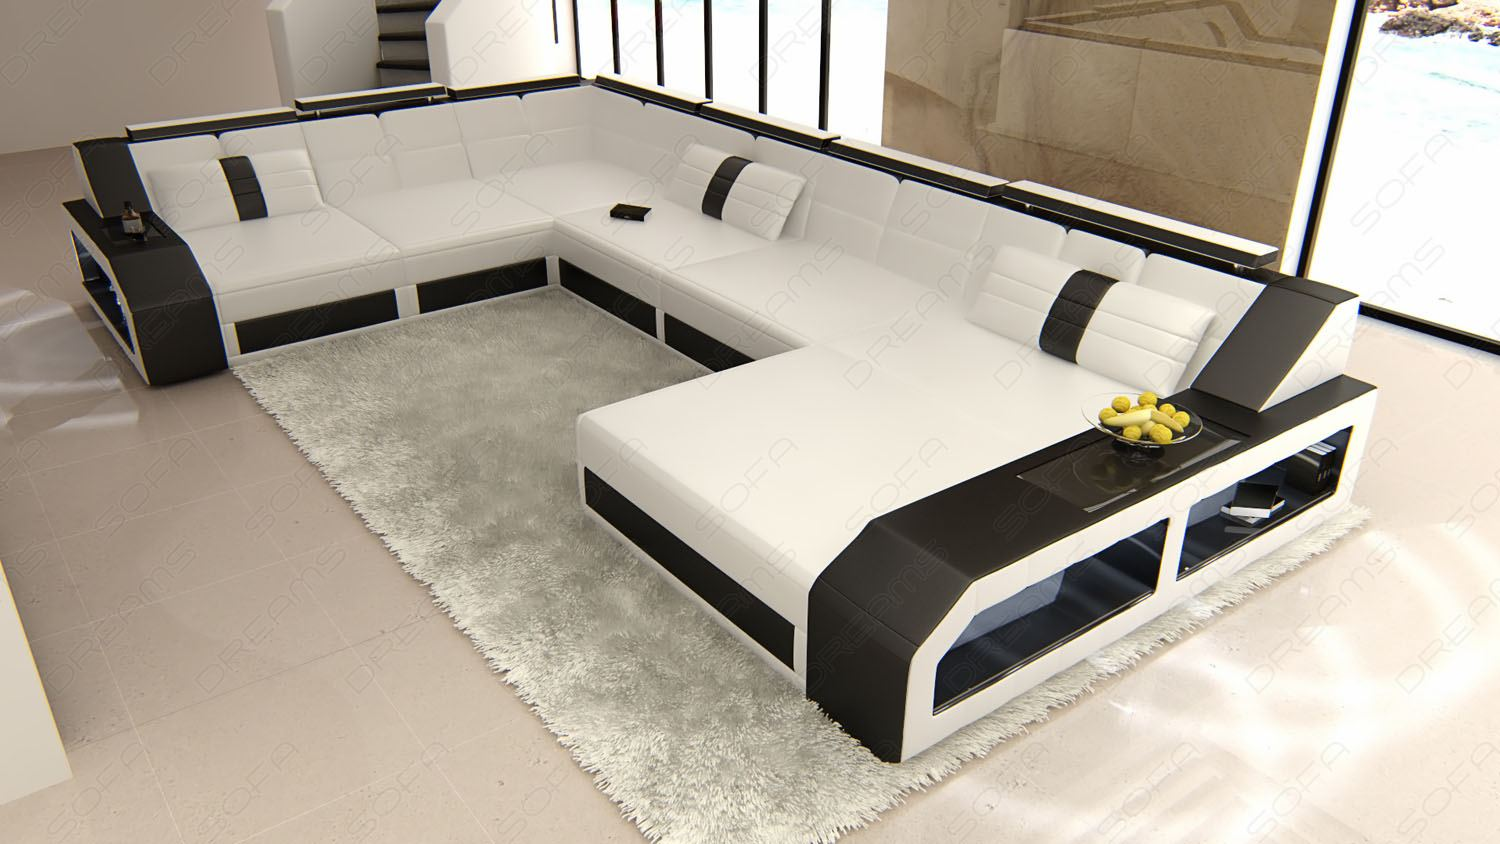 u shaped sofa xxl leather matera u form designer couch. Black Bedroom Furniture Sets. Home Design Ideas